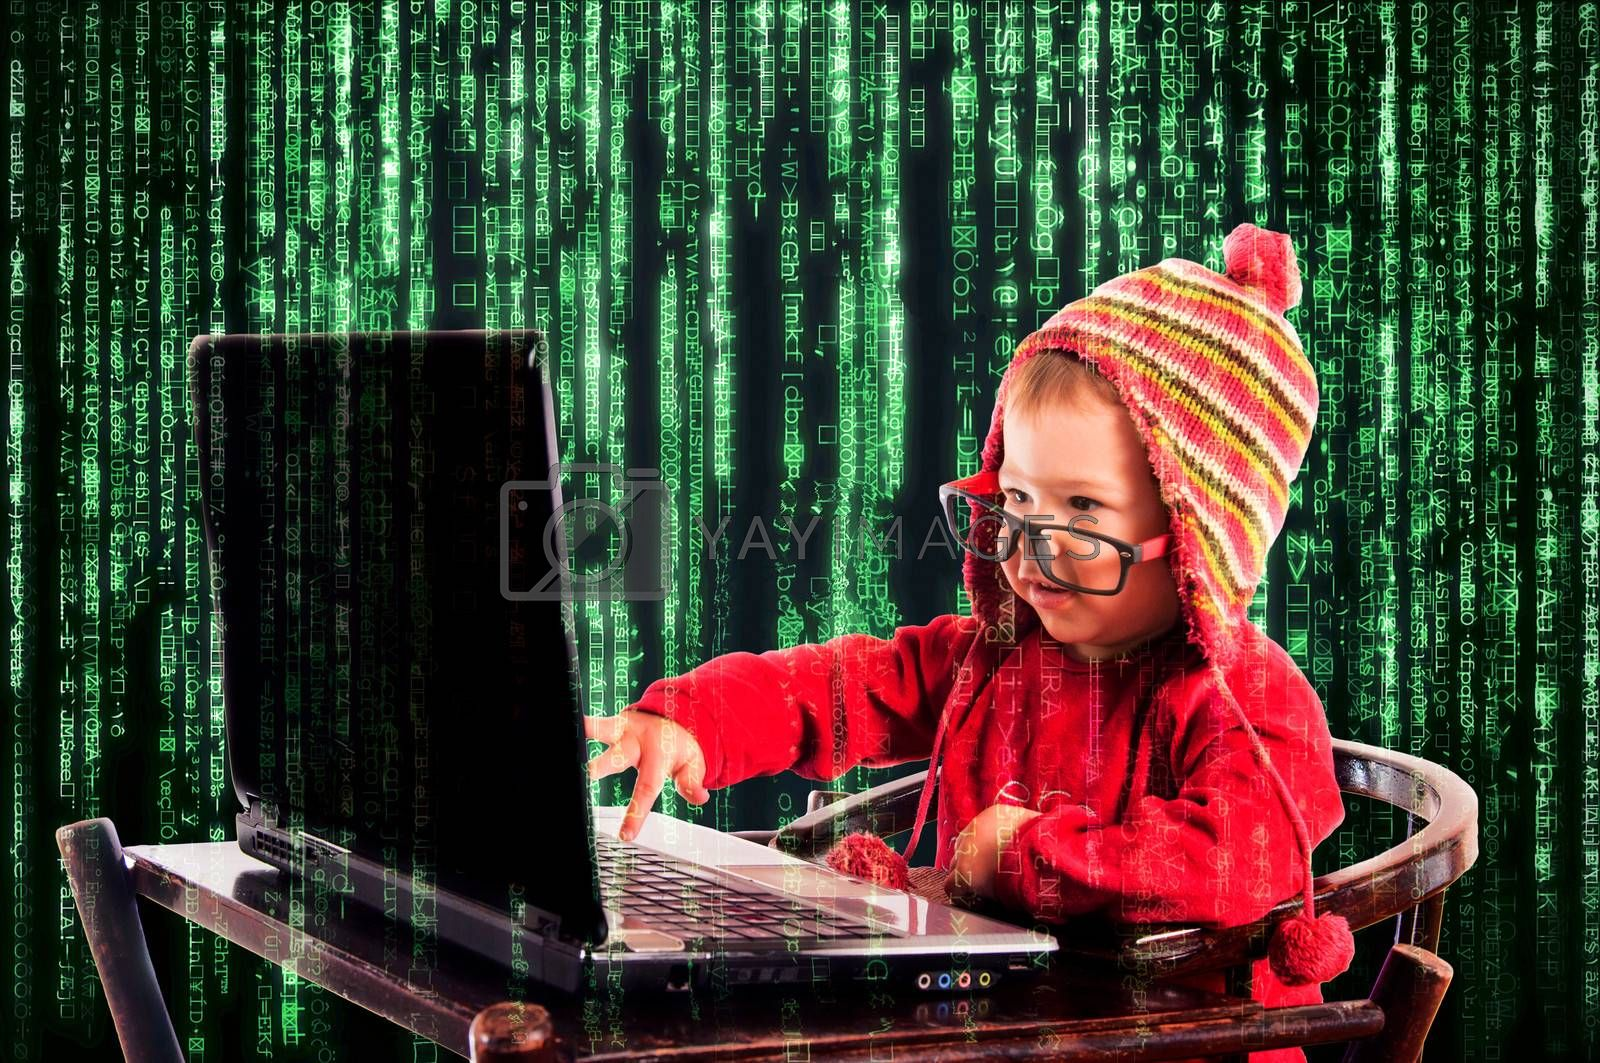 Little child typing on the keyboard.Selective focus on the child